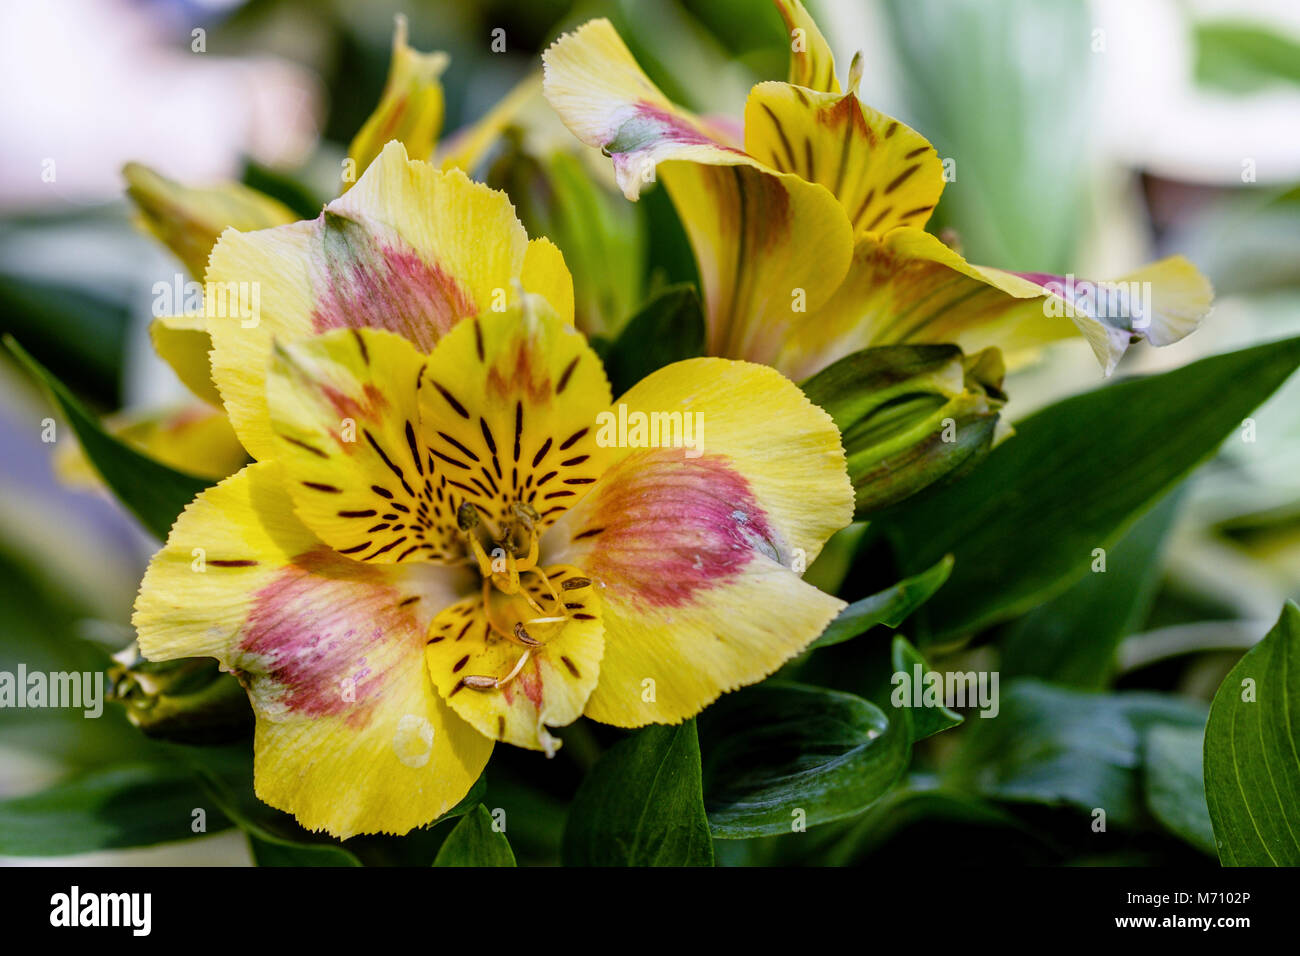 Rhododendron luteum or yellow azalea flower blossoms in full bloom. - Stock Image